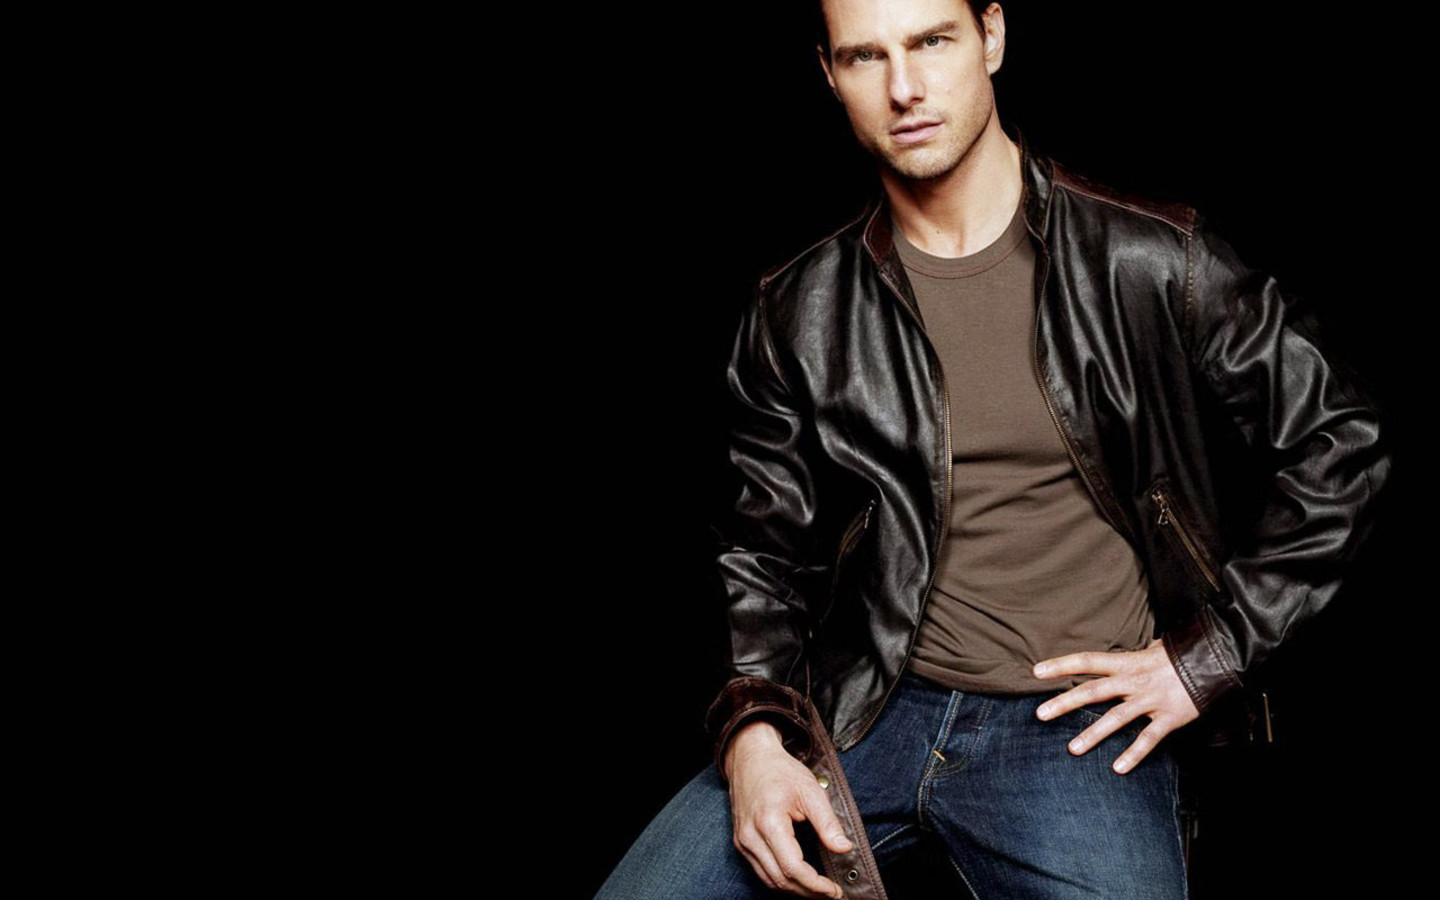 Tom Cruise HD Wallpapers   Celebrities HD Wallpapers 1440x900